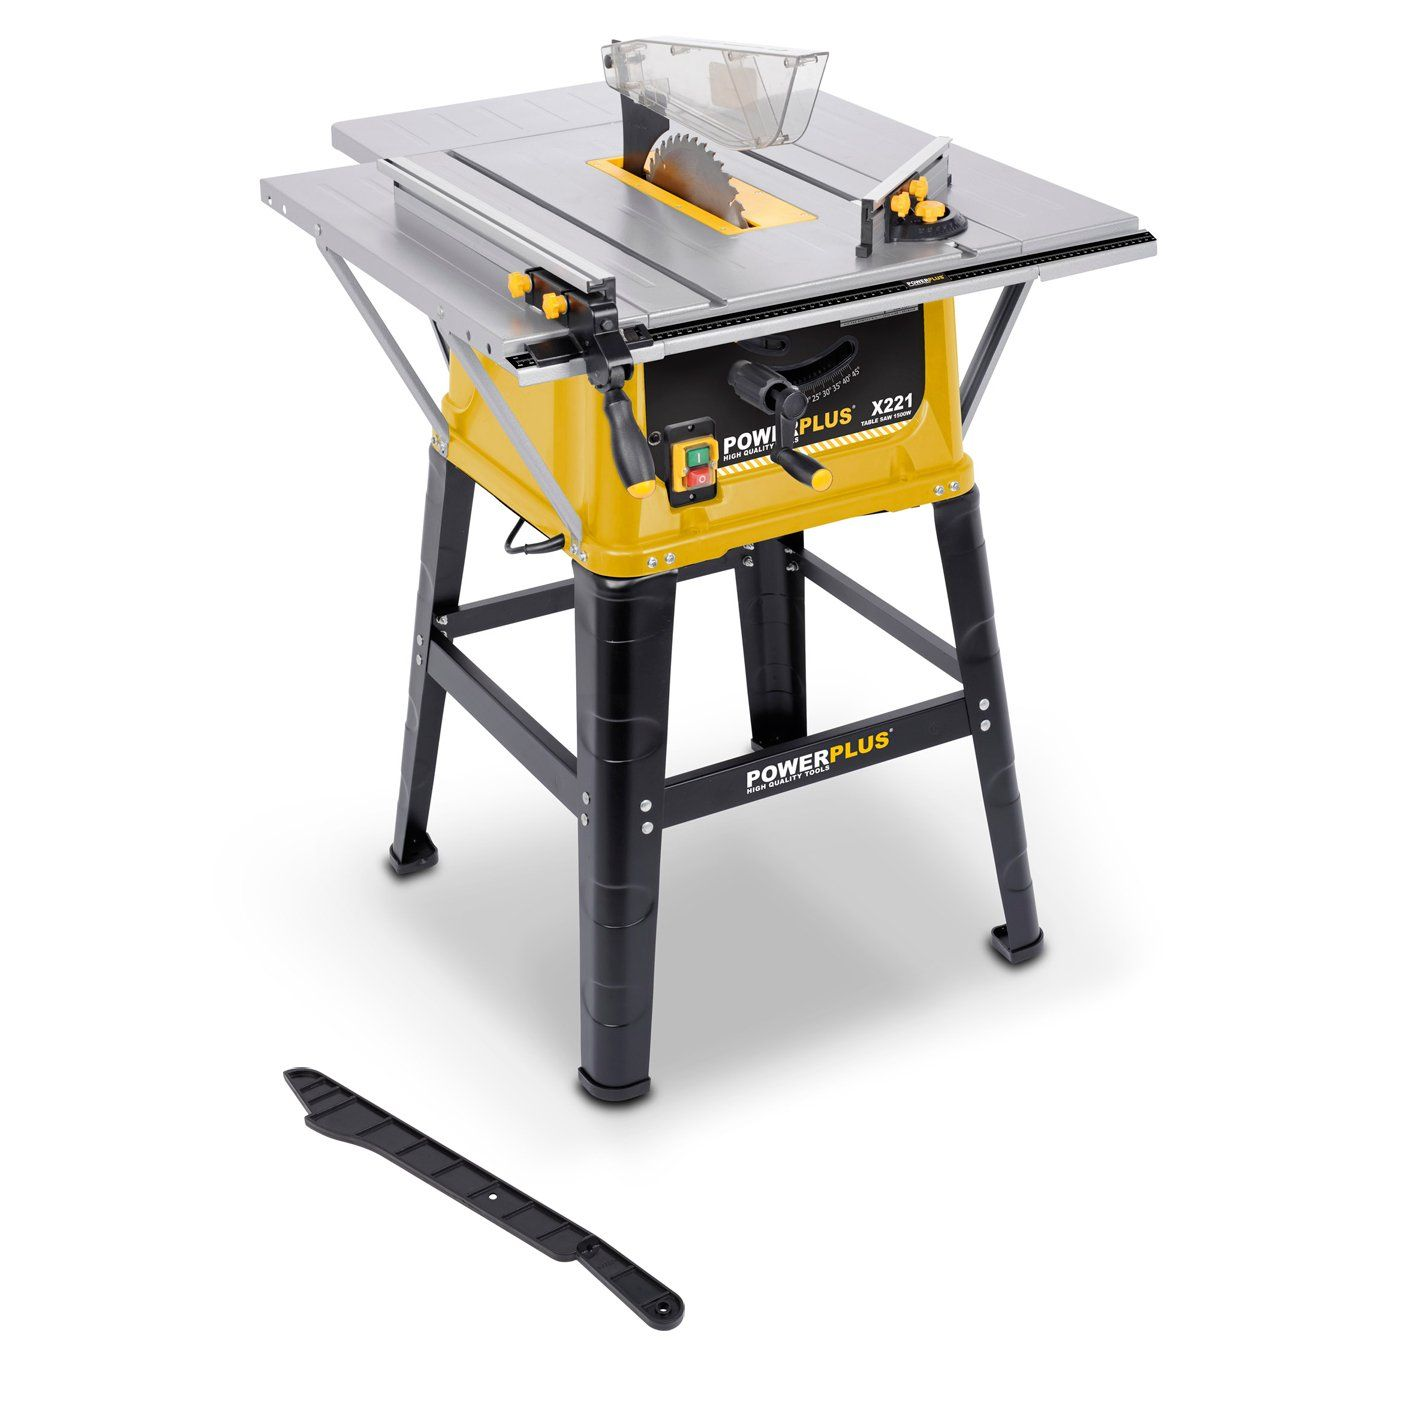 """Powerplus 1500 Watt, 254mm 10"""" Heavy Duty Table Saw Complete With Parallel Guide, Mitre Gauge and Stand POWX221 - 3 Year Home User Warranty: Amazon.co.uk: DIY & Tools"""